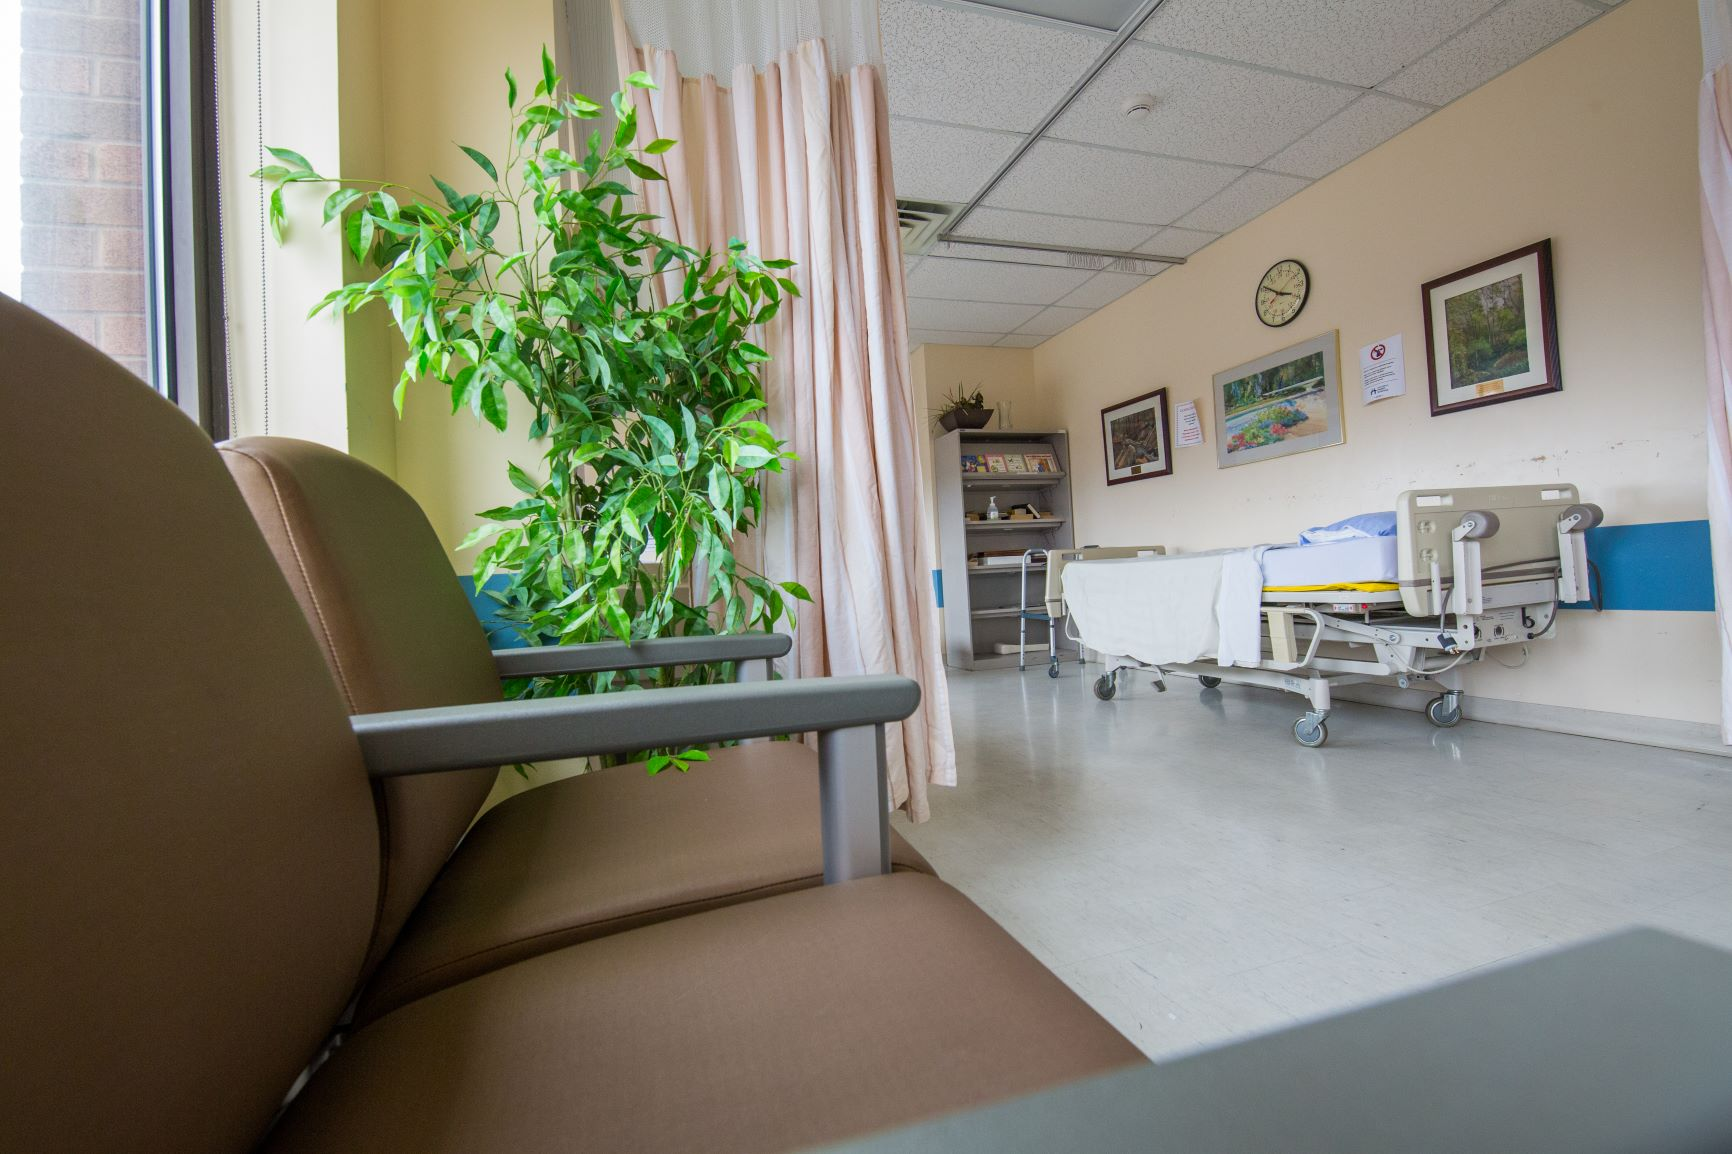 Empty waiting room with chairs and a plant